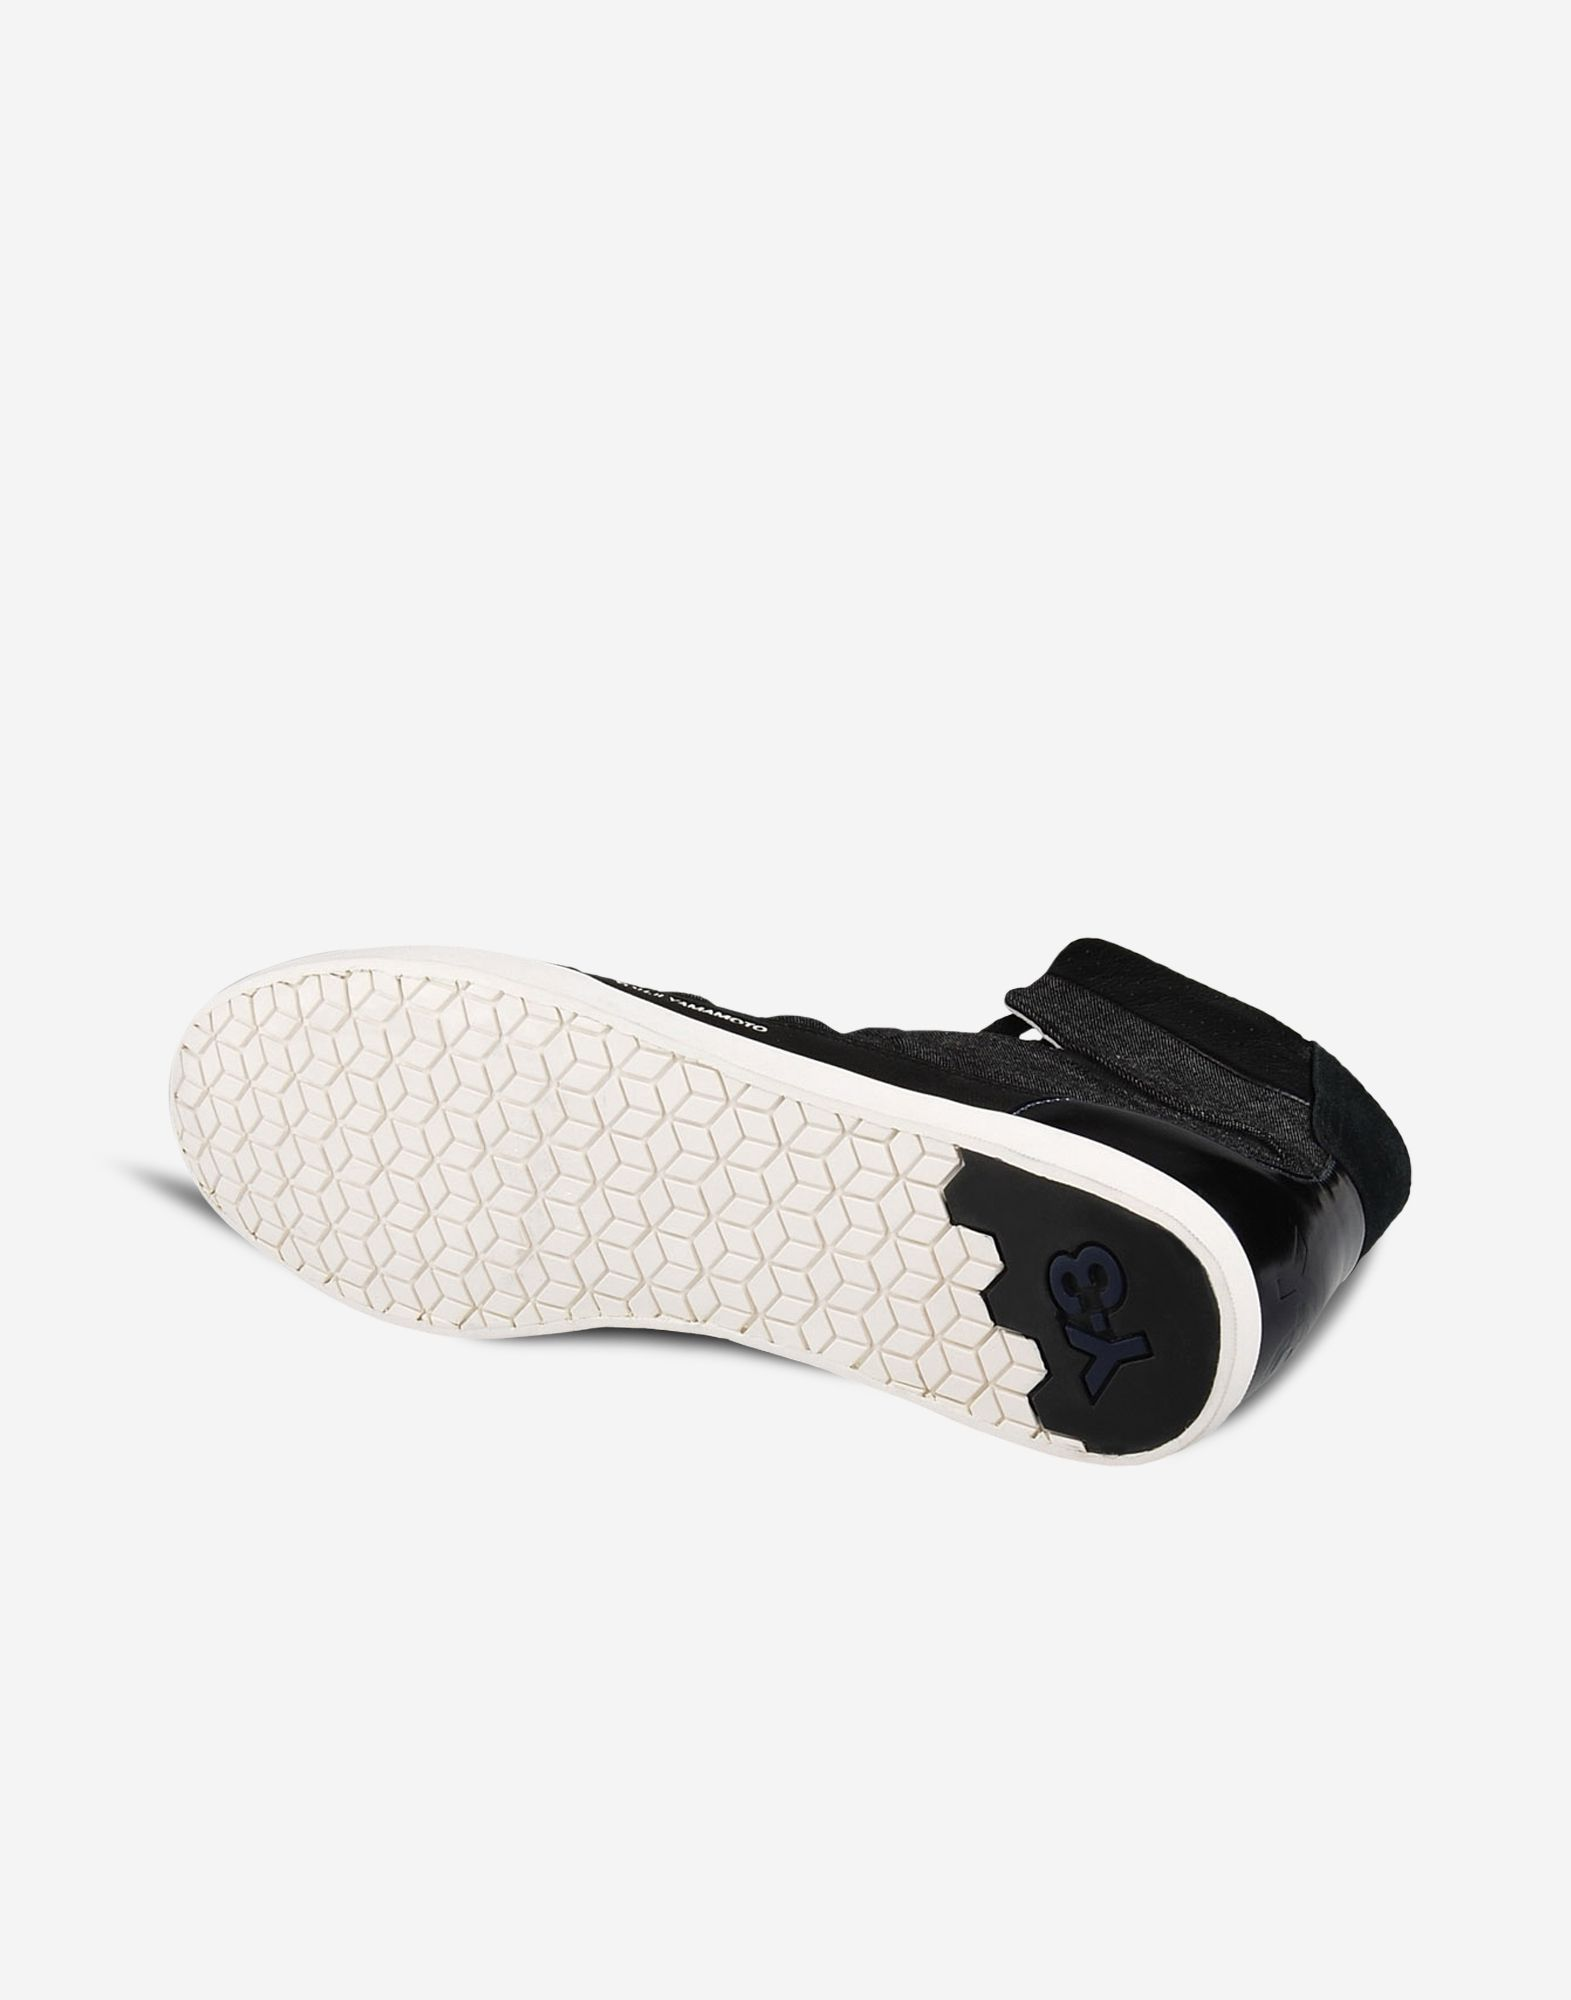 Y-3 Y-3 Honja High High-top sneakers Man e